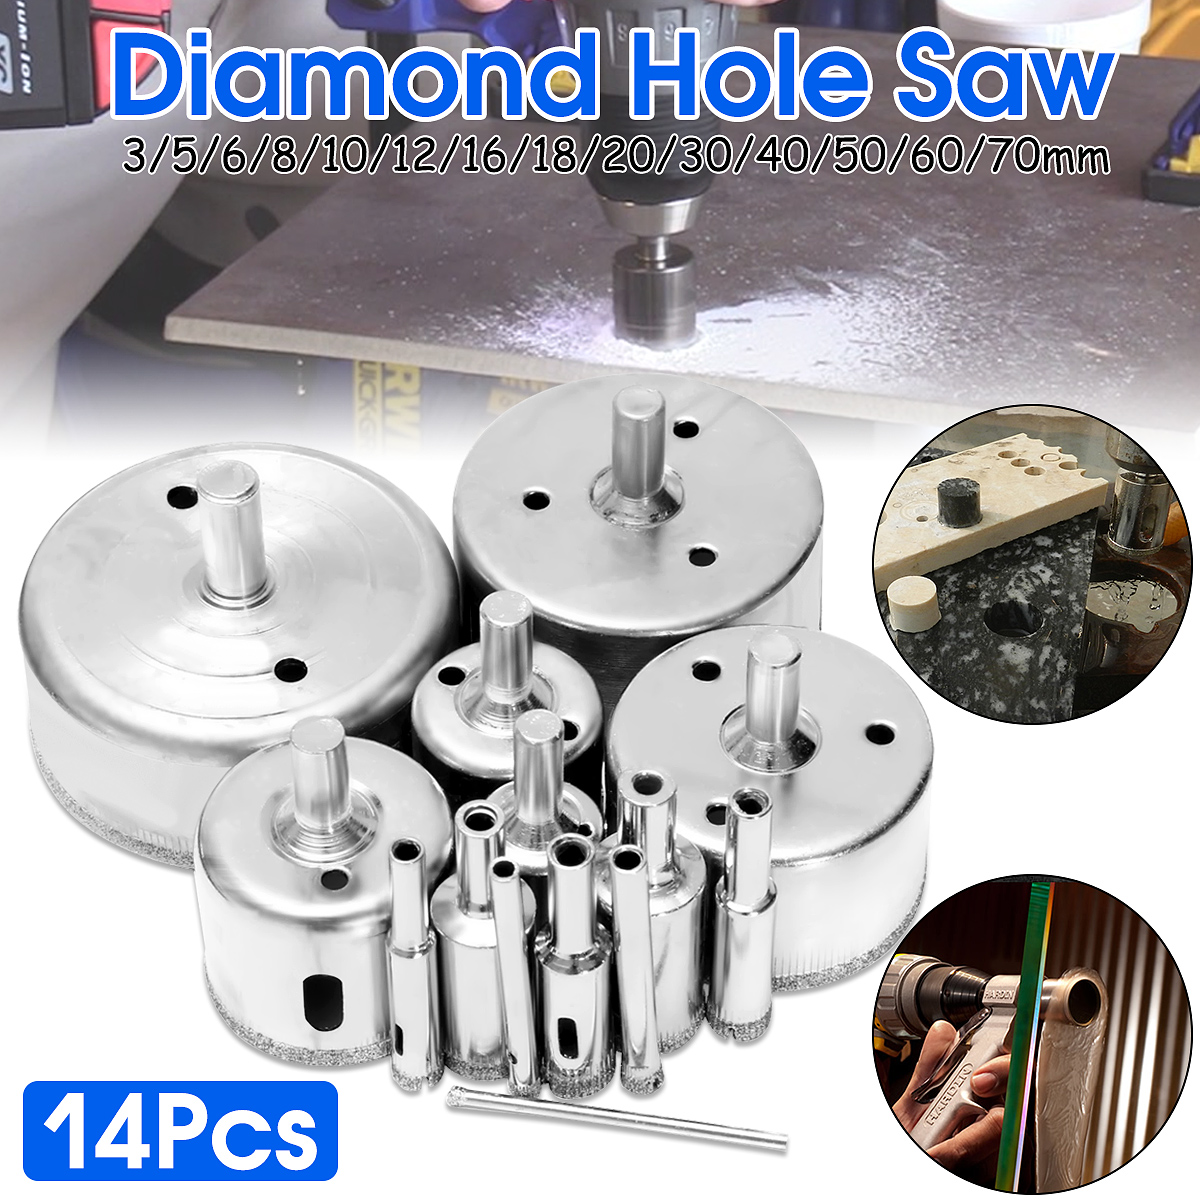 14Pcs/Set 3-70mm Diamond Holesaw Drill Bit Tool for Ceramic Porcelain Glass Marble Diamond Holes Saw Drill Bits14Pcs/Set 3-70mm Diamond Holesaw Drill Bit Tool for Ceramic Porcelain Glass Marble Diamond Holes Saw Drill Bits